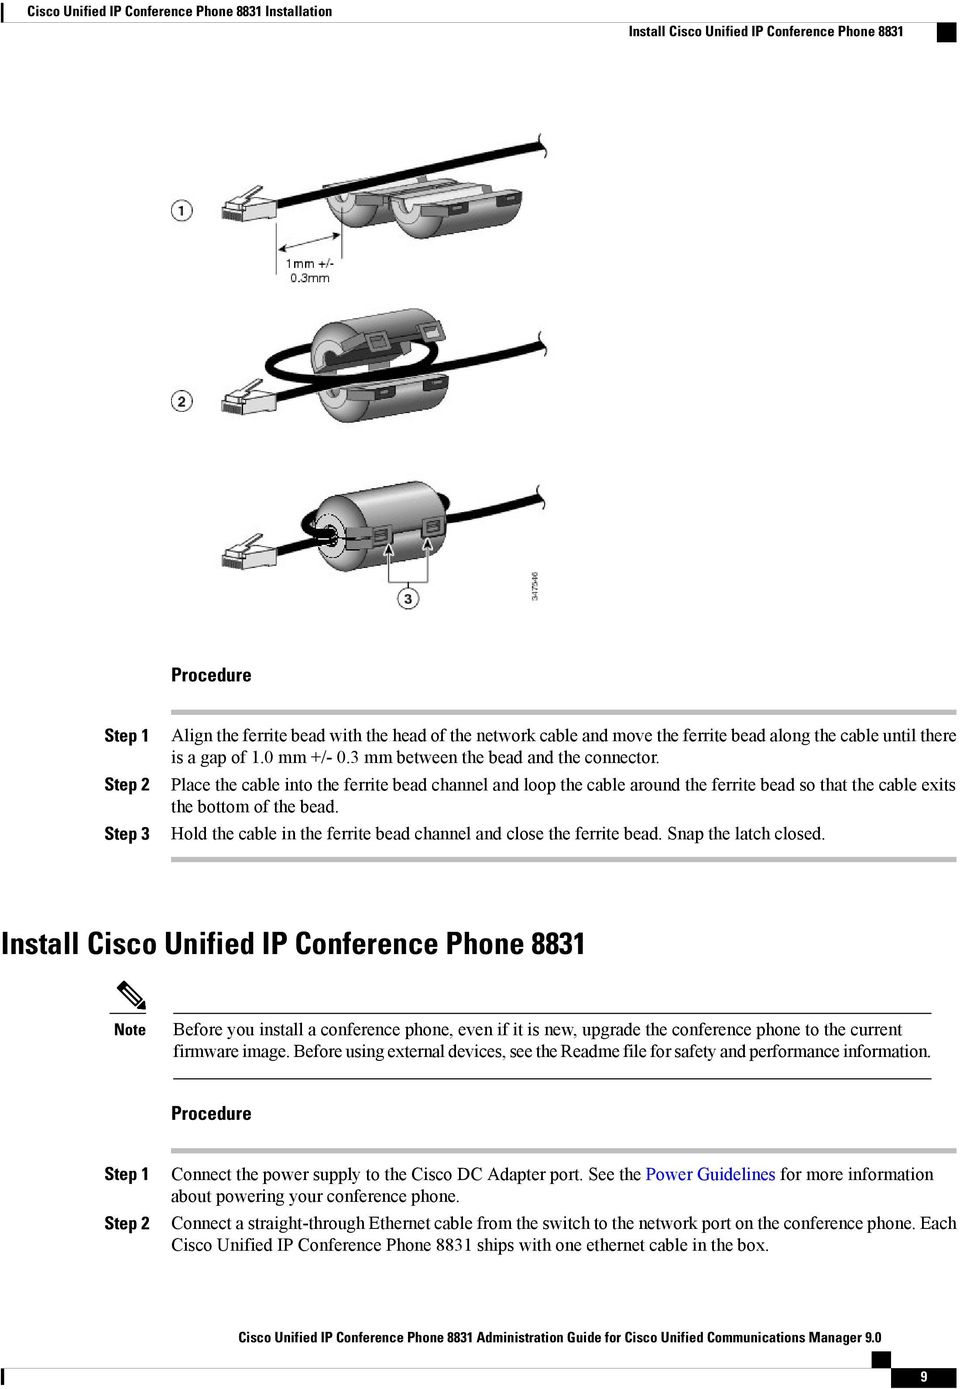 Cisco Unified Ip Conference Phone 8831 Installation Pdf Straight Through Ethernet Cable Place The Into Ferrite Bead Channel And Loop Around